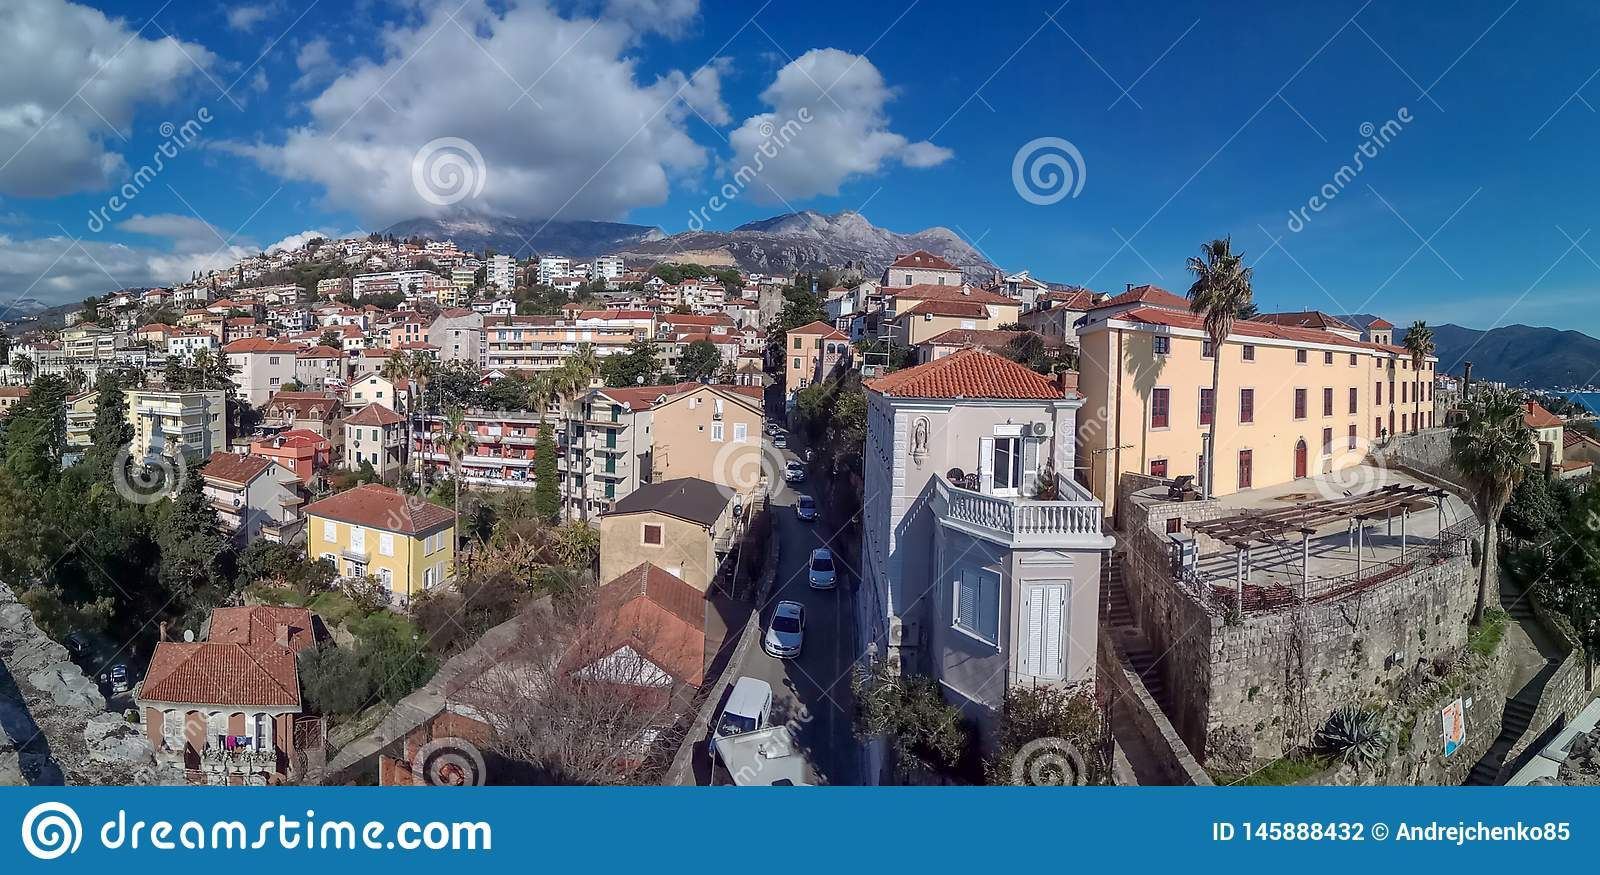 Panorama view on Herceg Novi, an old town in Montenegro